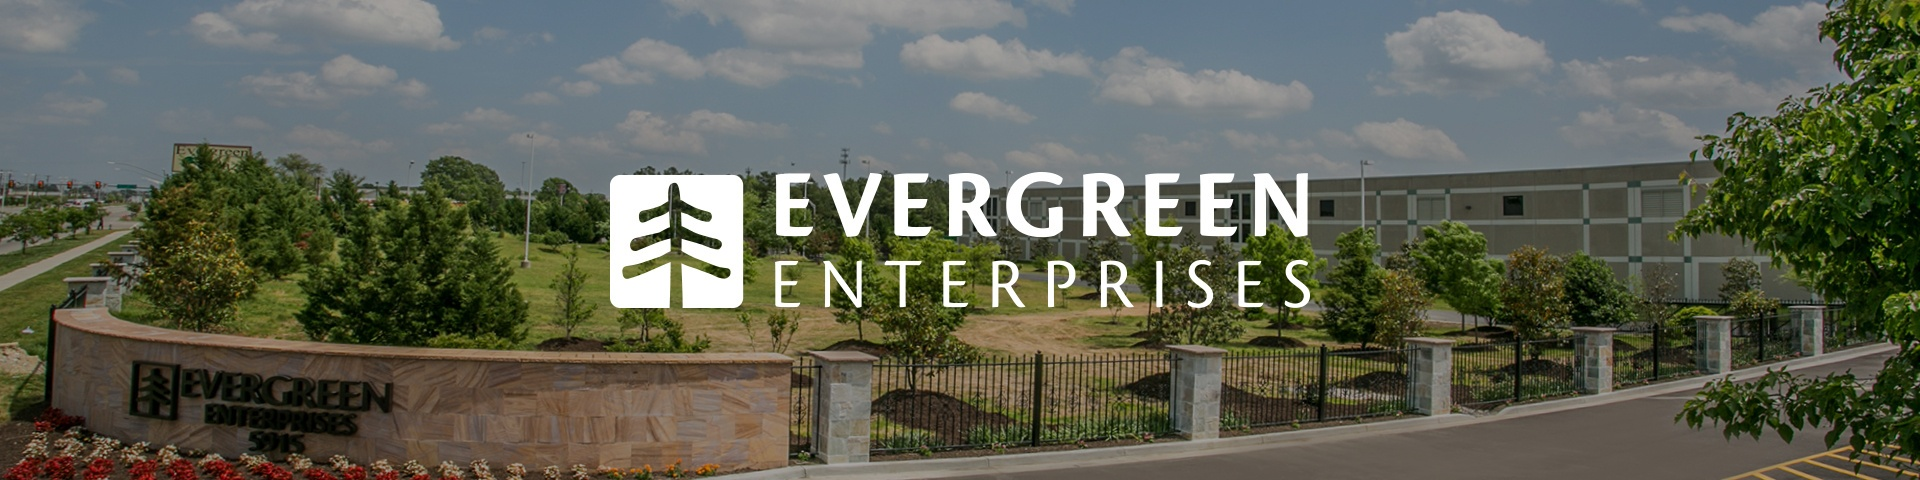 Evergreen Corporate